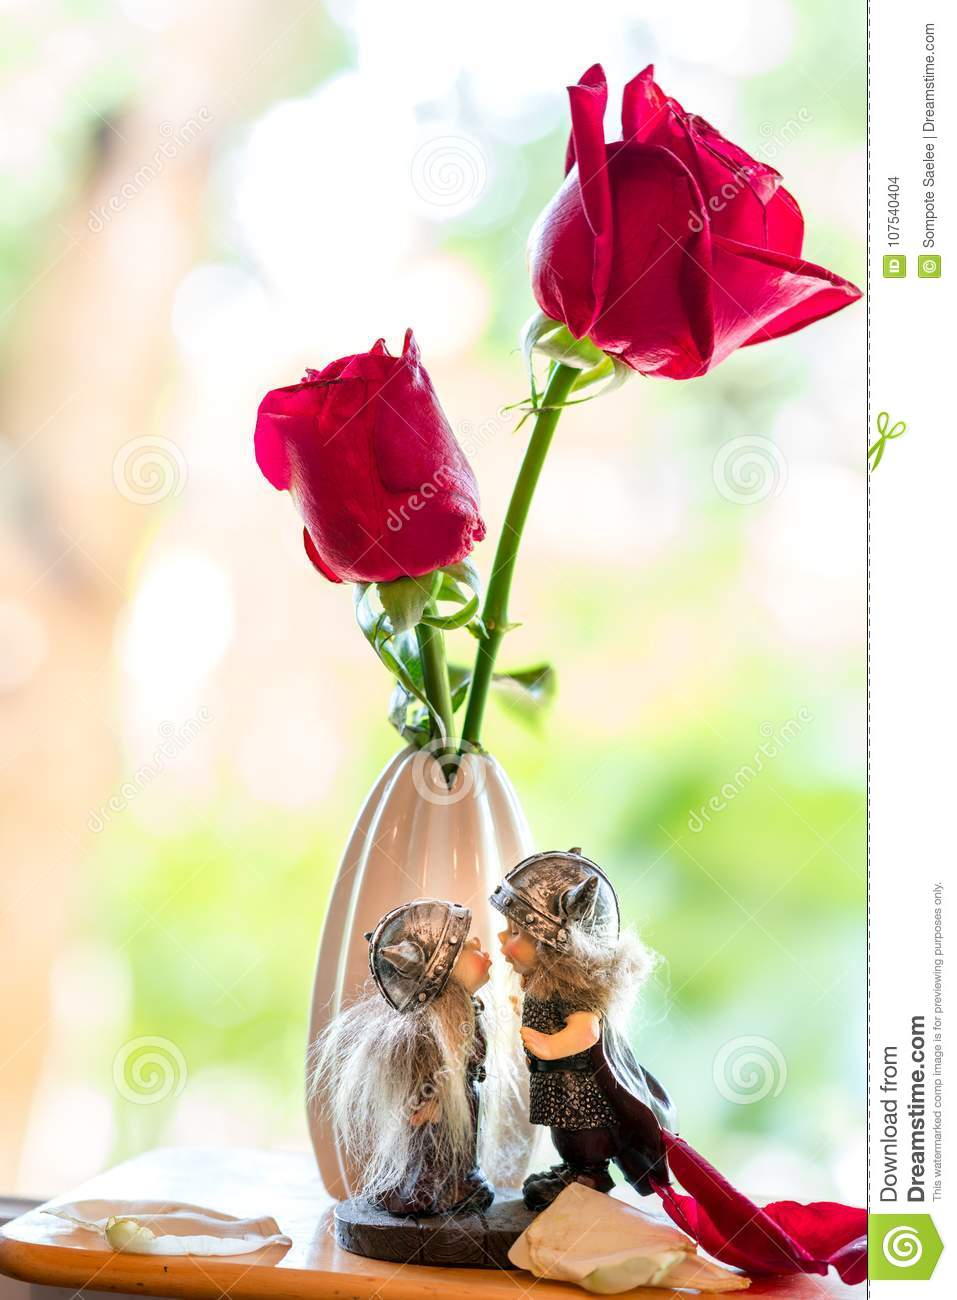 kissing dolls under two red roses with soft focus background